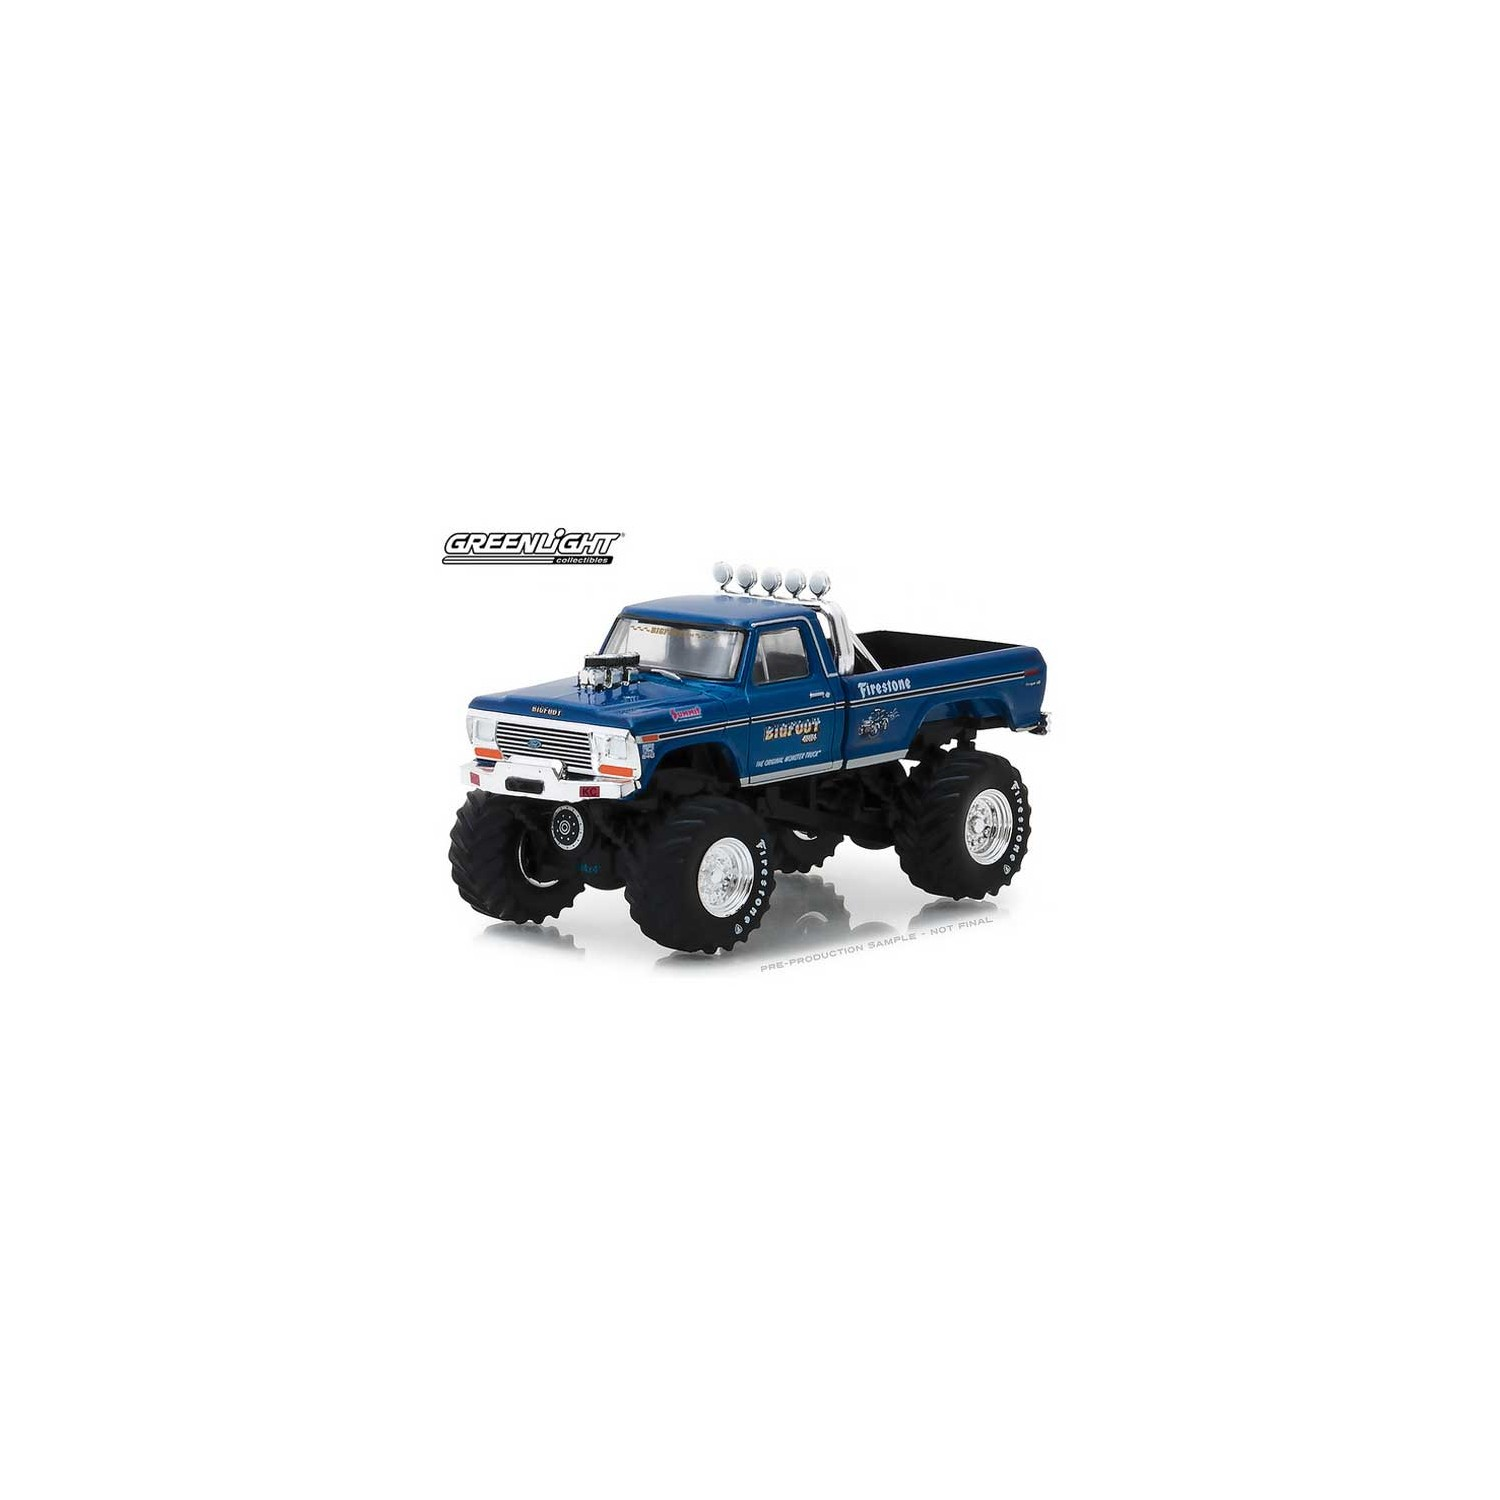 Greenlight Hobby Exclusive 1974 Ford F 250 Monster Truck Bigfoot Toy